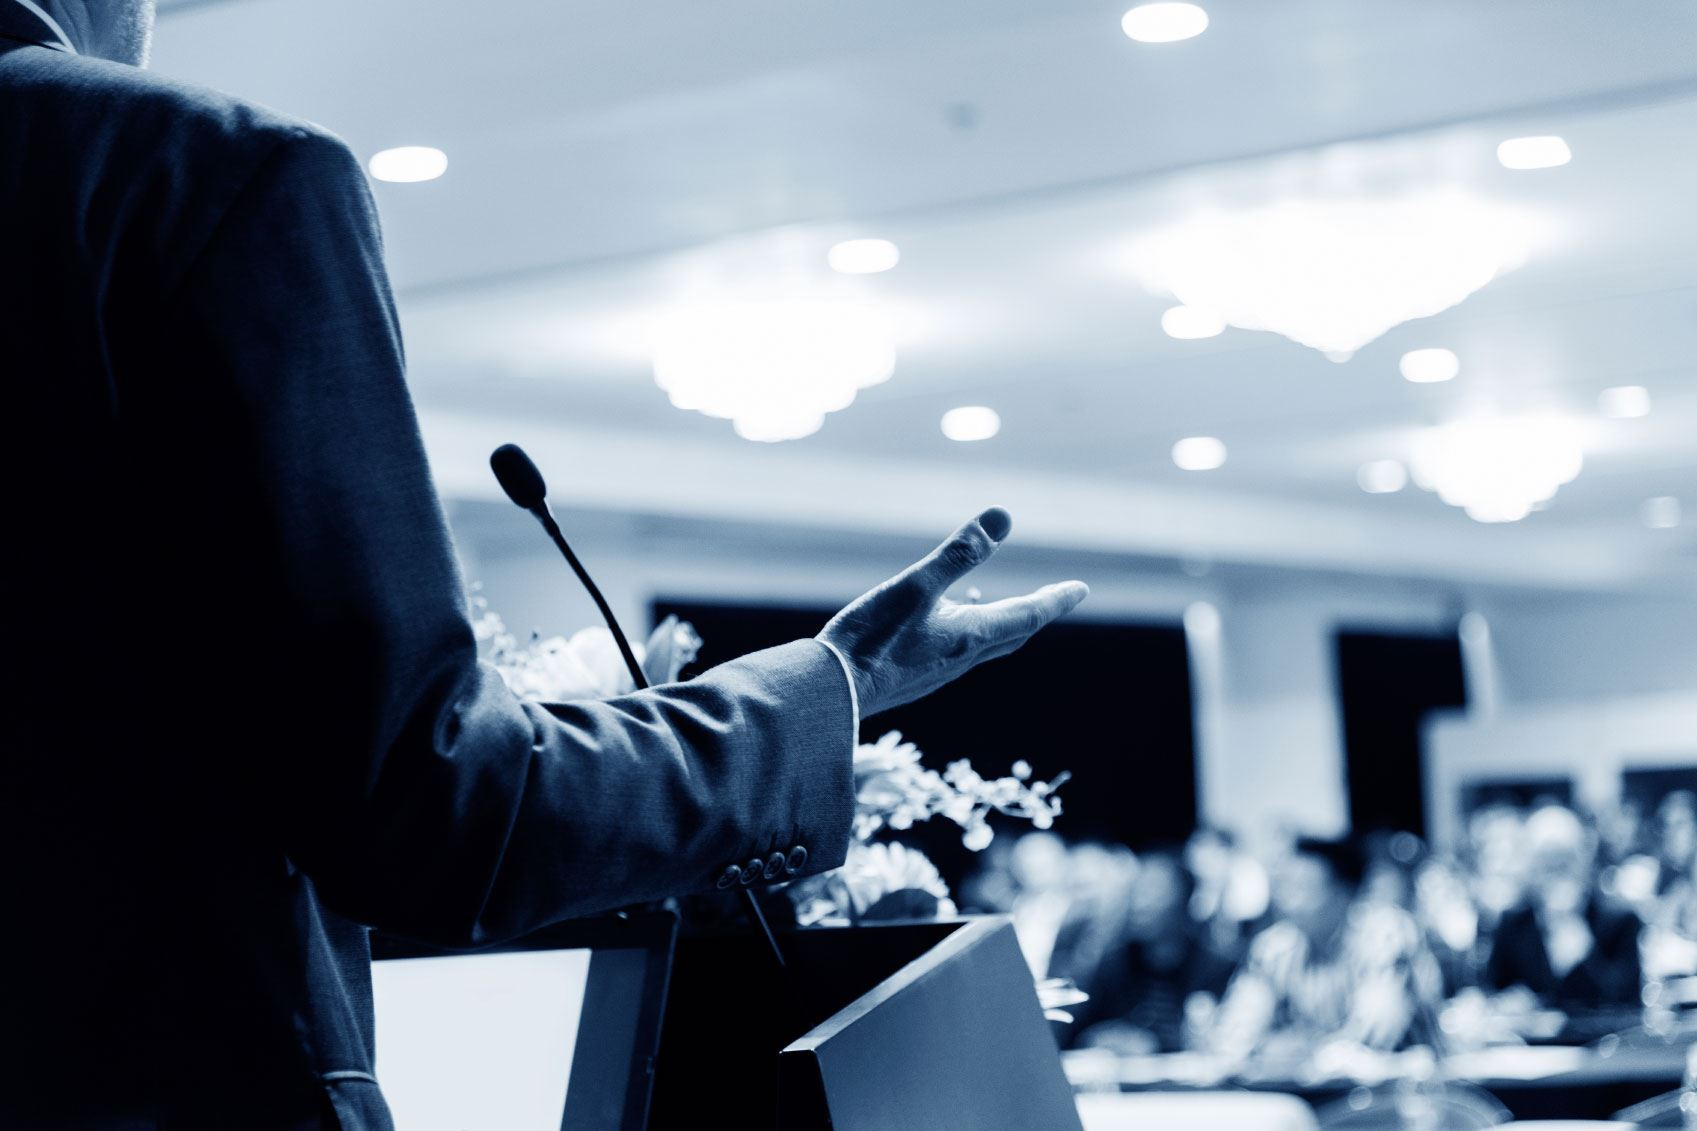 7 Ways To Become An Amazing Public Speaker